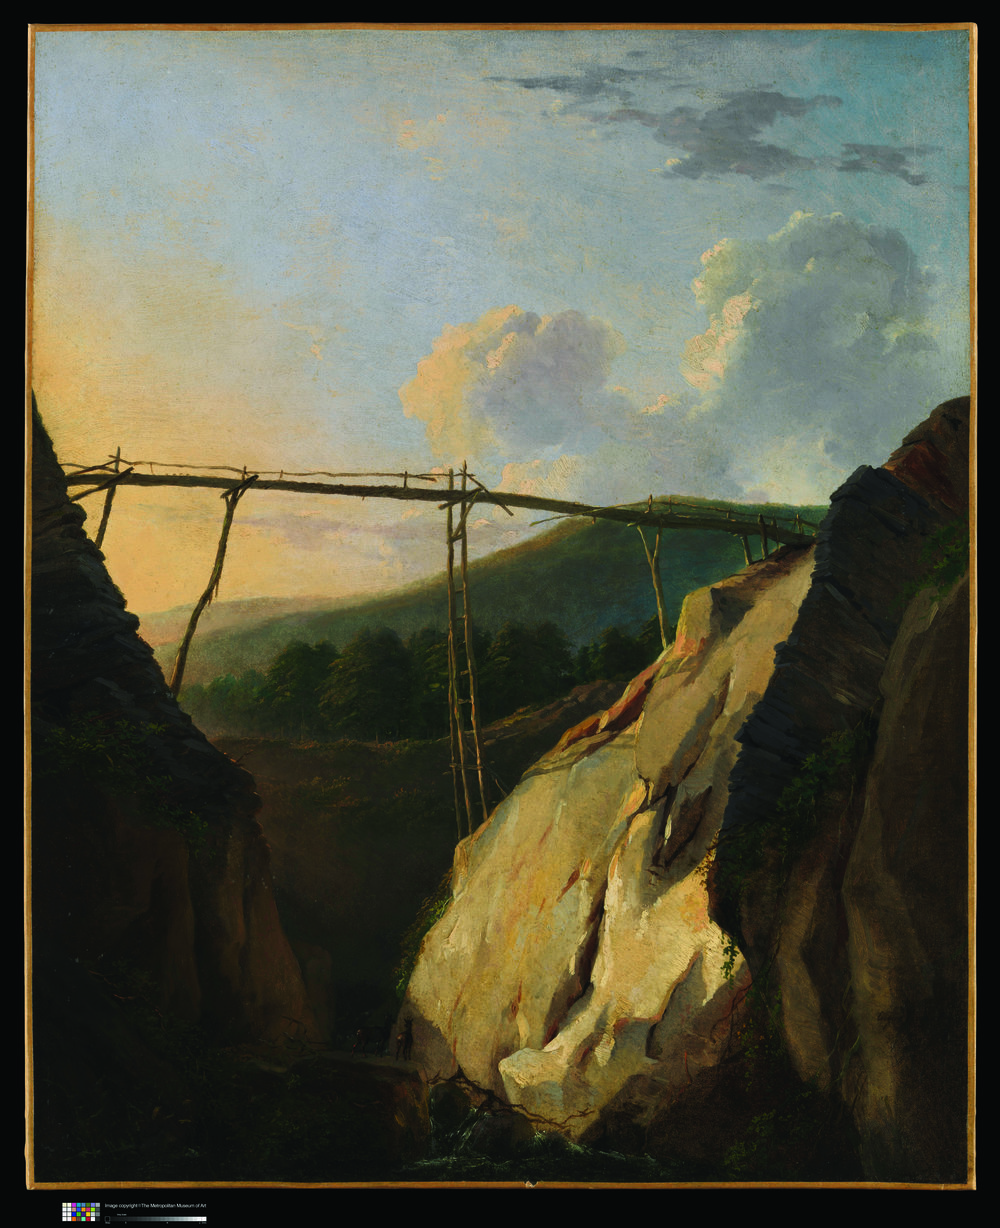 Eugéne-Joseph Verboeckhoven    (1799 Comines-Warneton-Schaerbeek),    Mountainous Landscape with Bridge   , n.D. oil on paper, laid down on canvas, 57.2x46.4 cm. Museum of Art, New York, Whitney Collection, promised gift of Wheelock Whitney gift of Mr. and Mrs. Charles S. McVeigh, by exchange, 2003.42.55. Courtesy of the McMullen Museum of Art, Boston College.